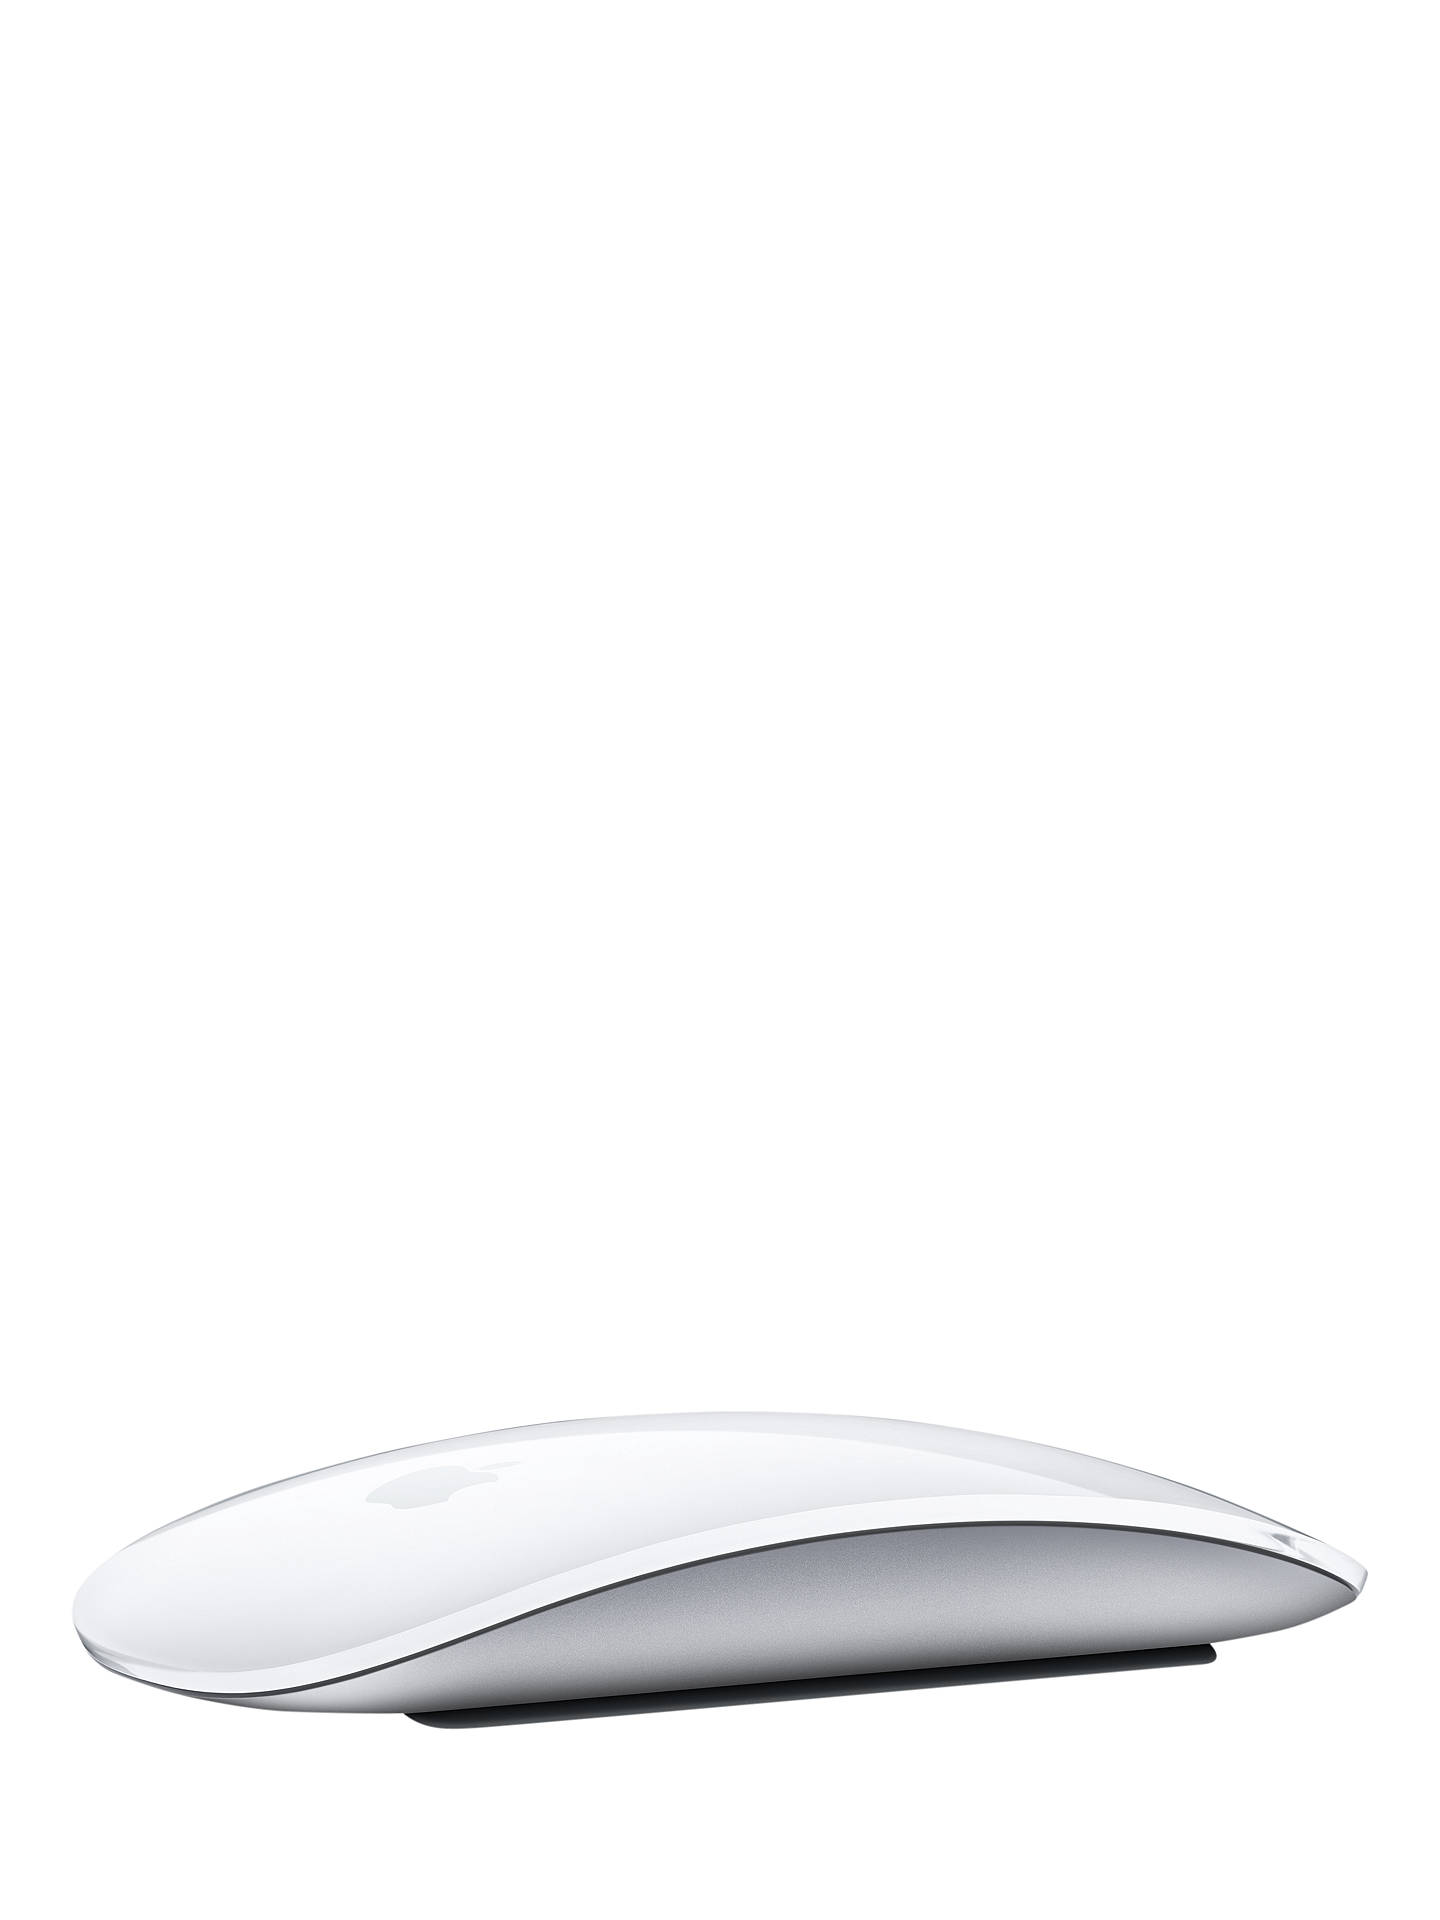 Buy Apple Magic Mouse 2 (2015), White Online at johnlewis.com